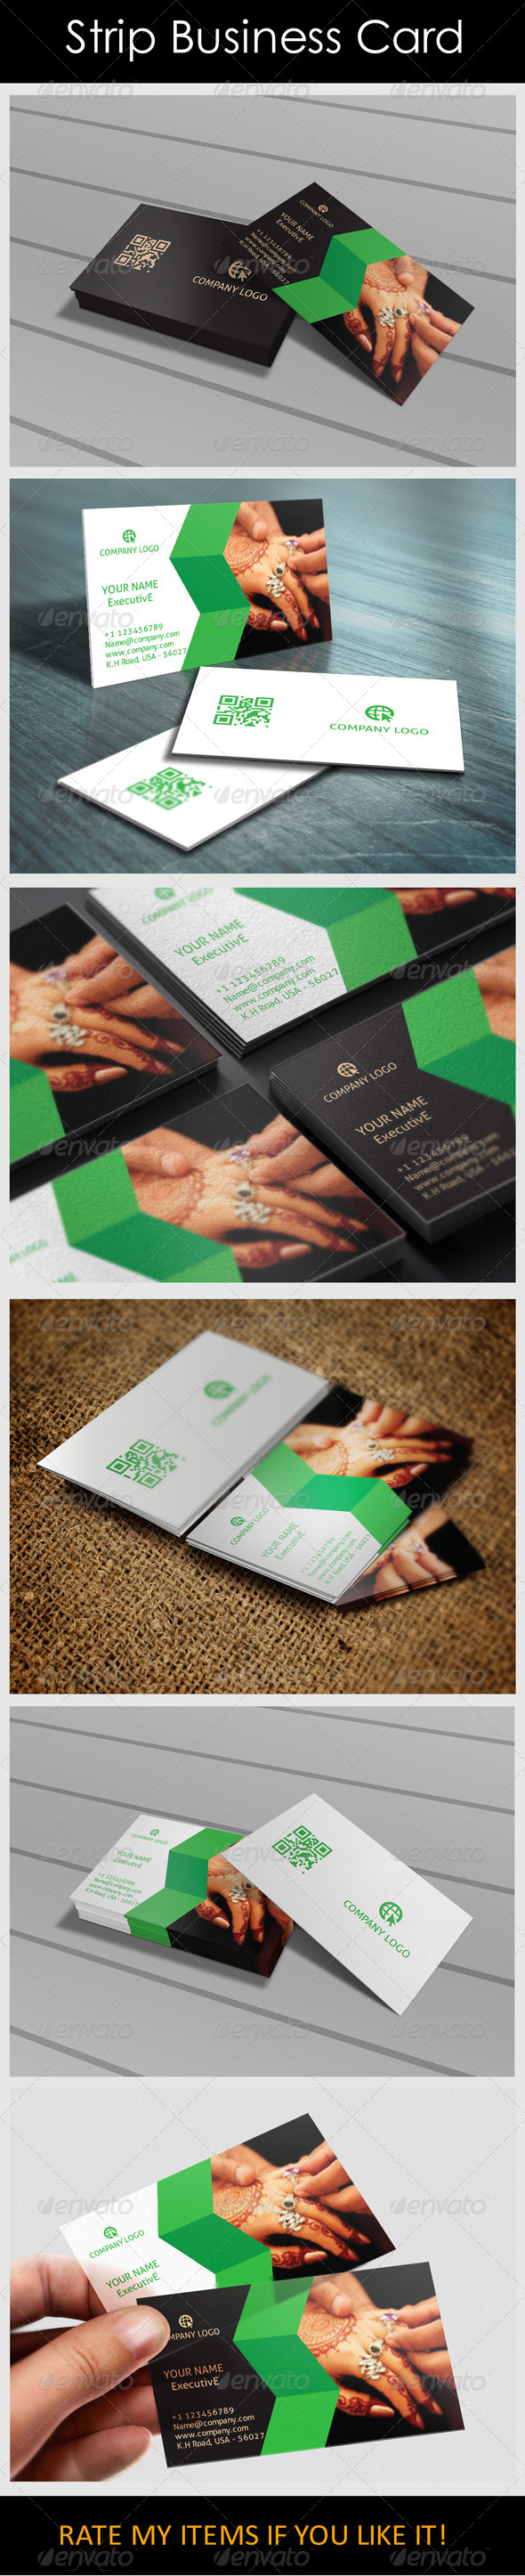 GraphicRiver Strip Business Card 6045379